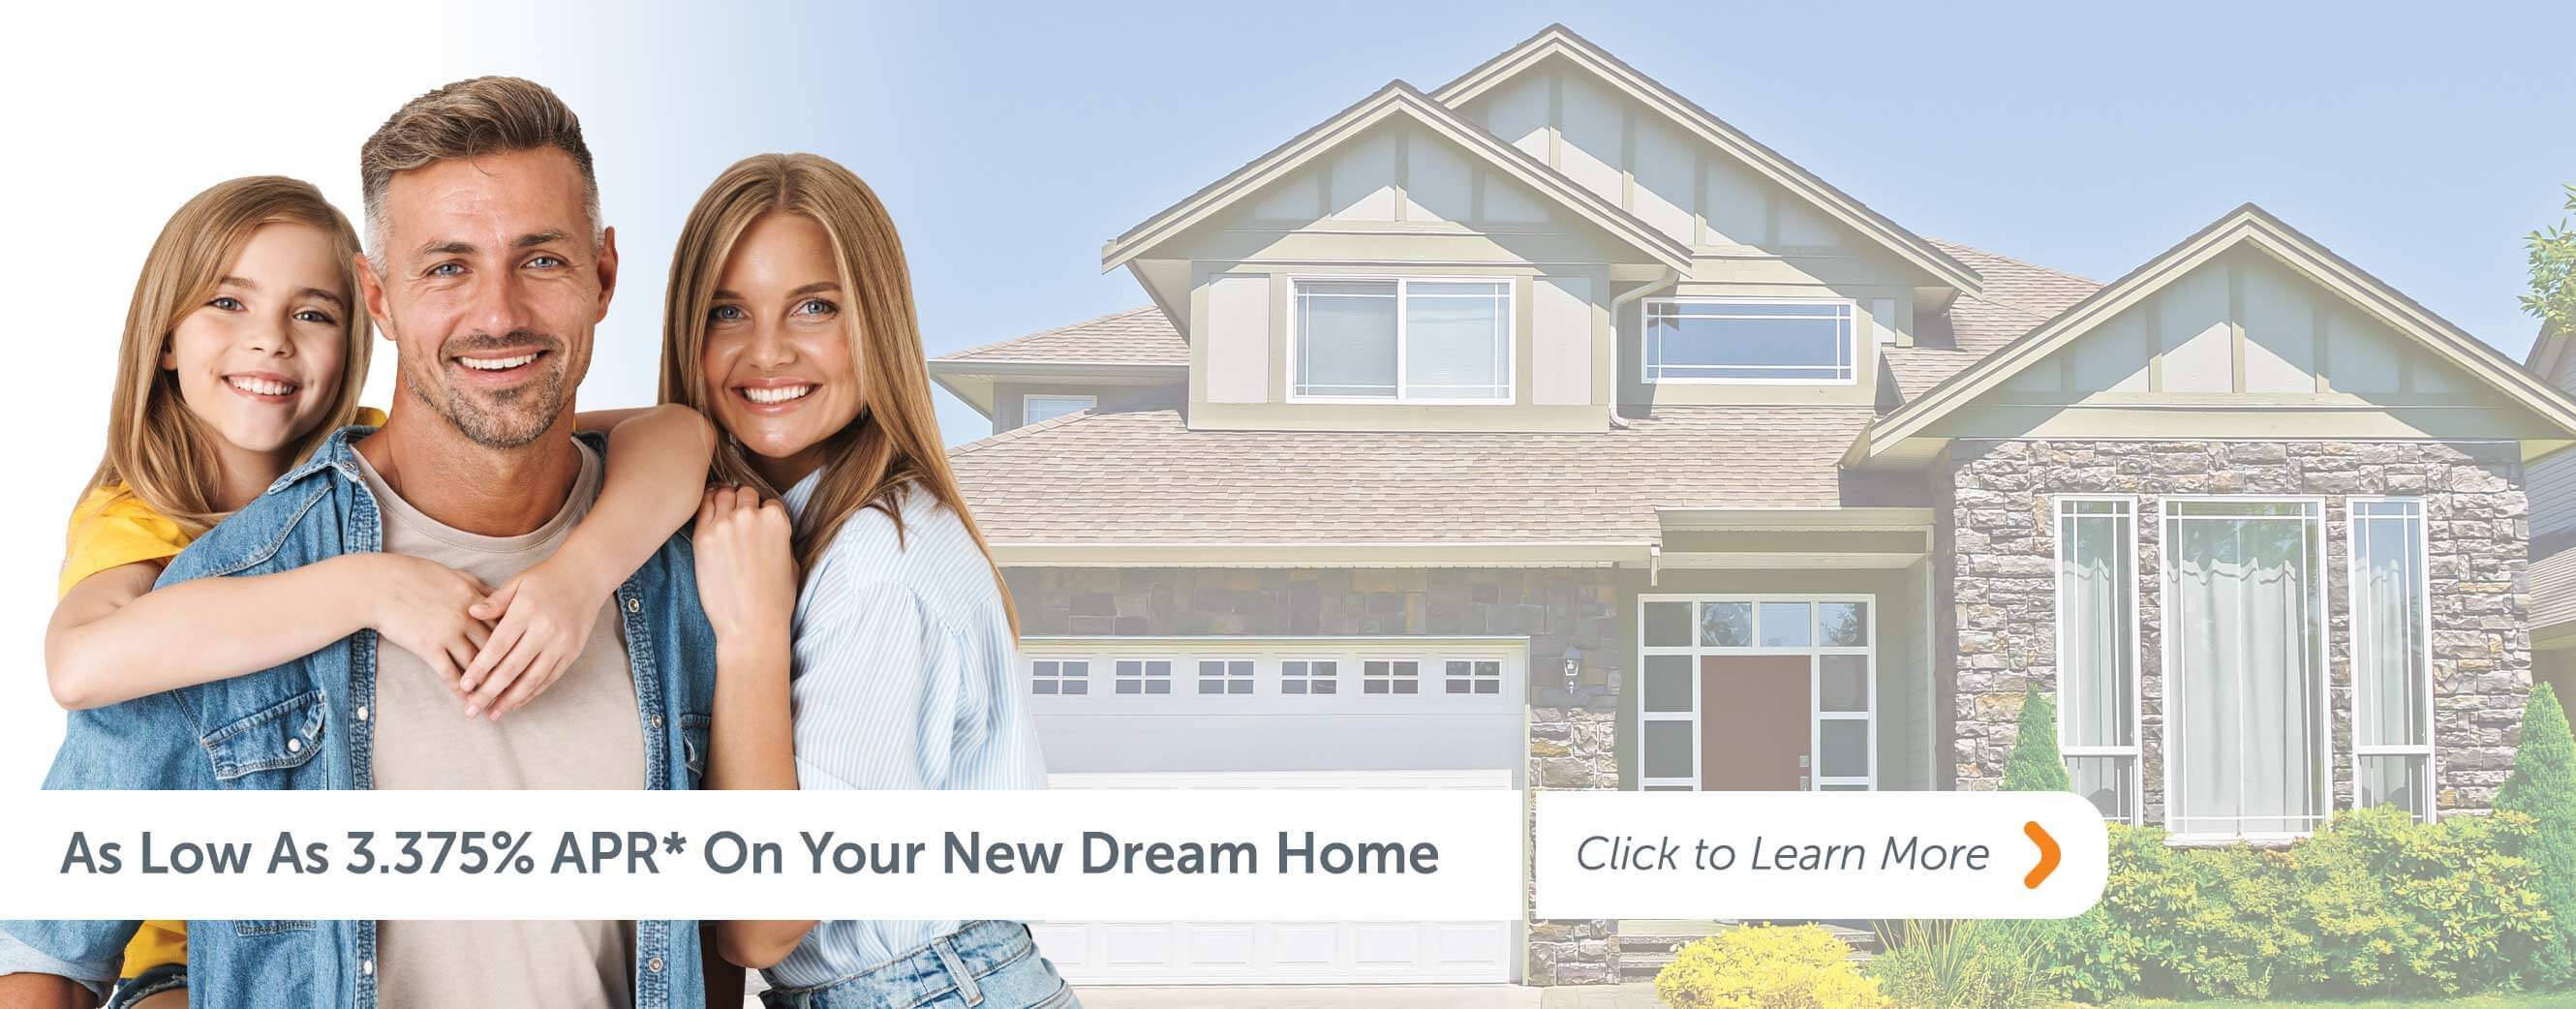 As Low as 3.375% APR* On Your New Dream Home Click to learn more